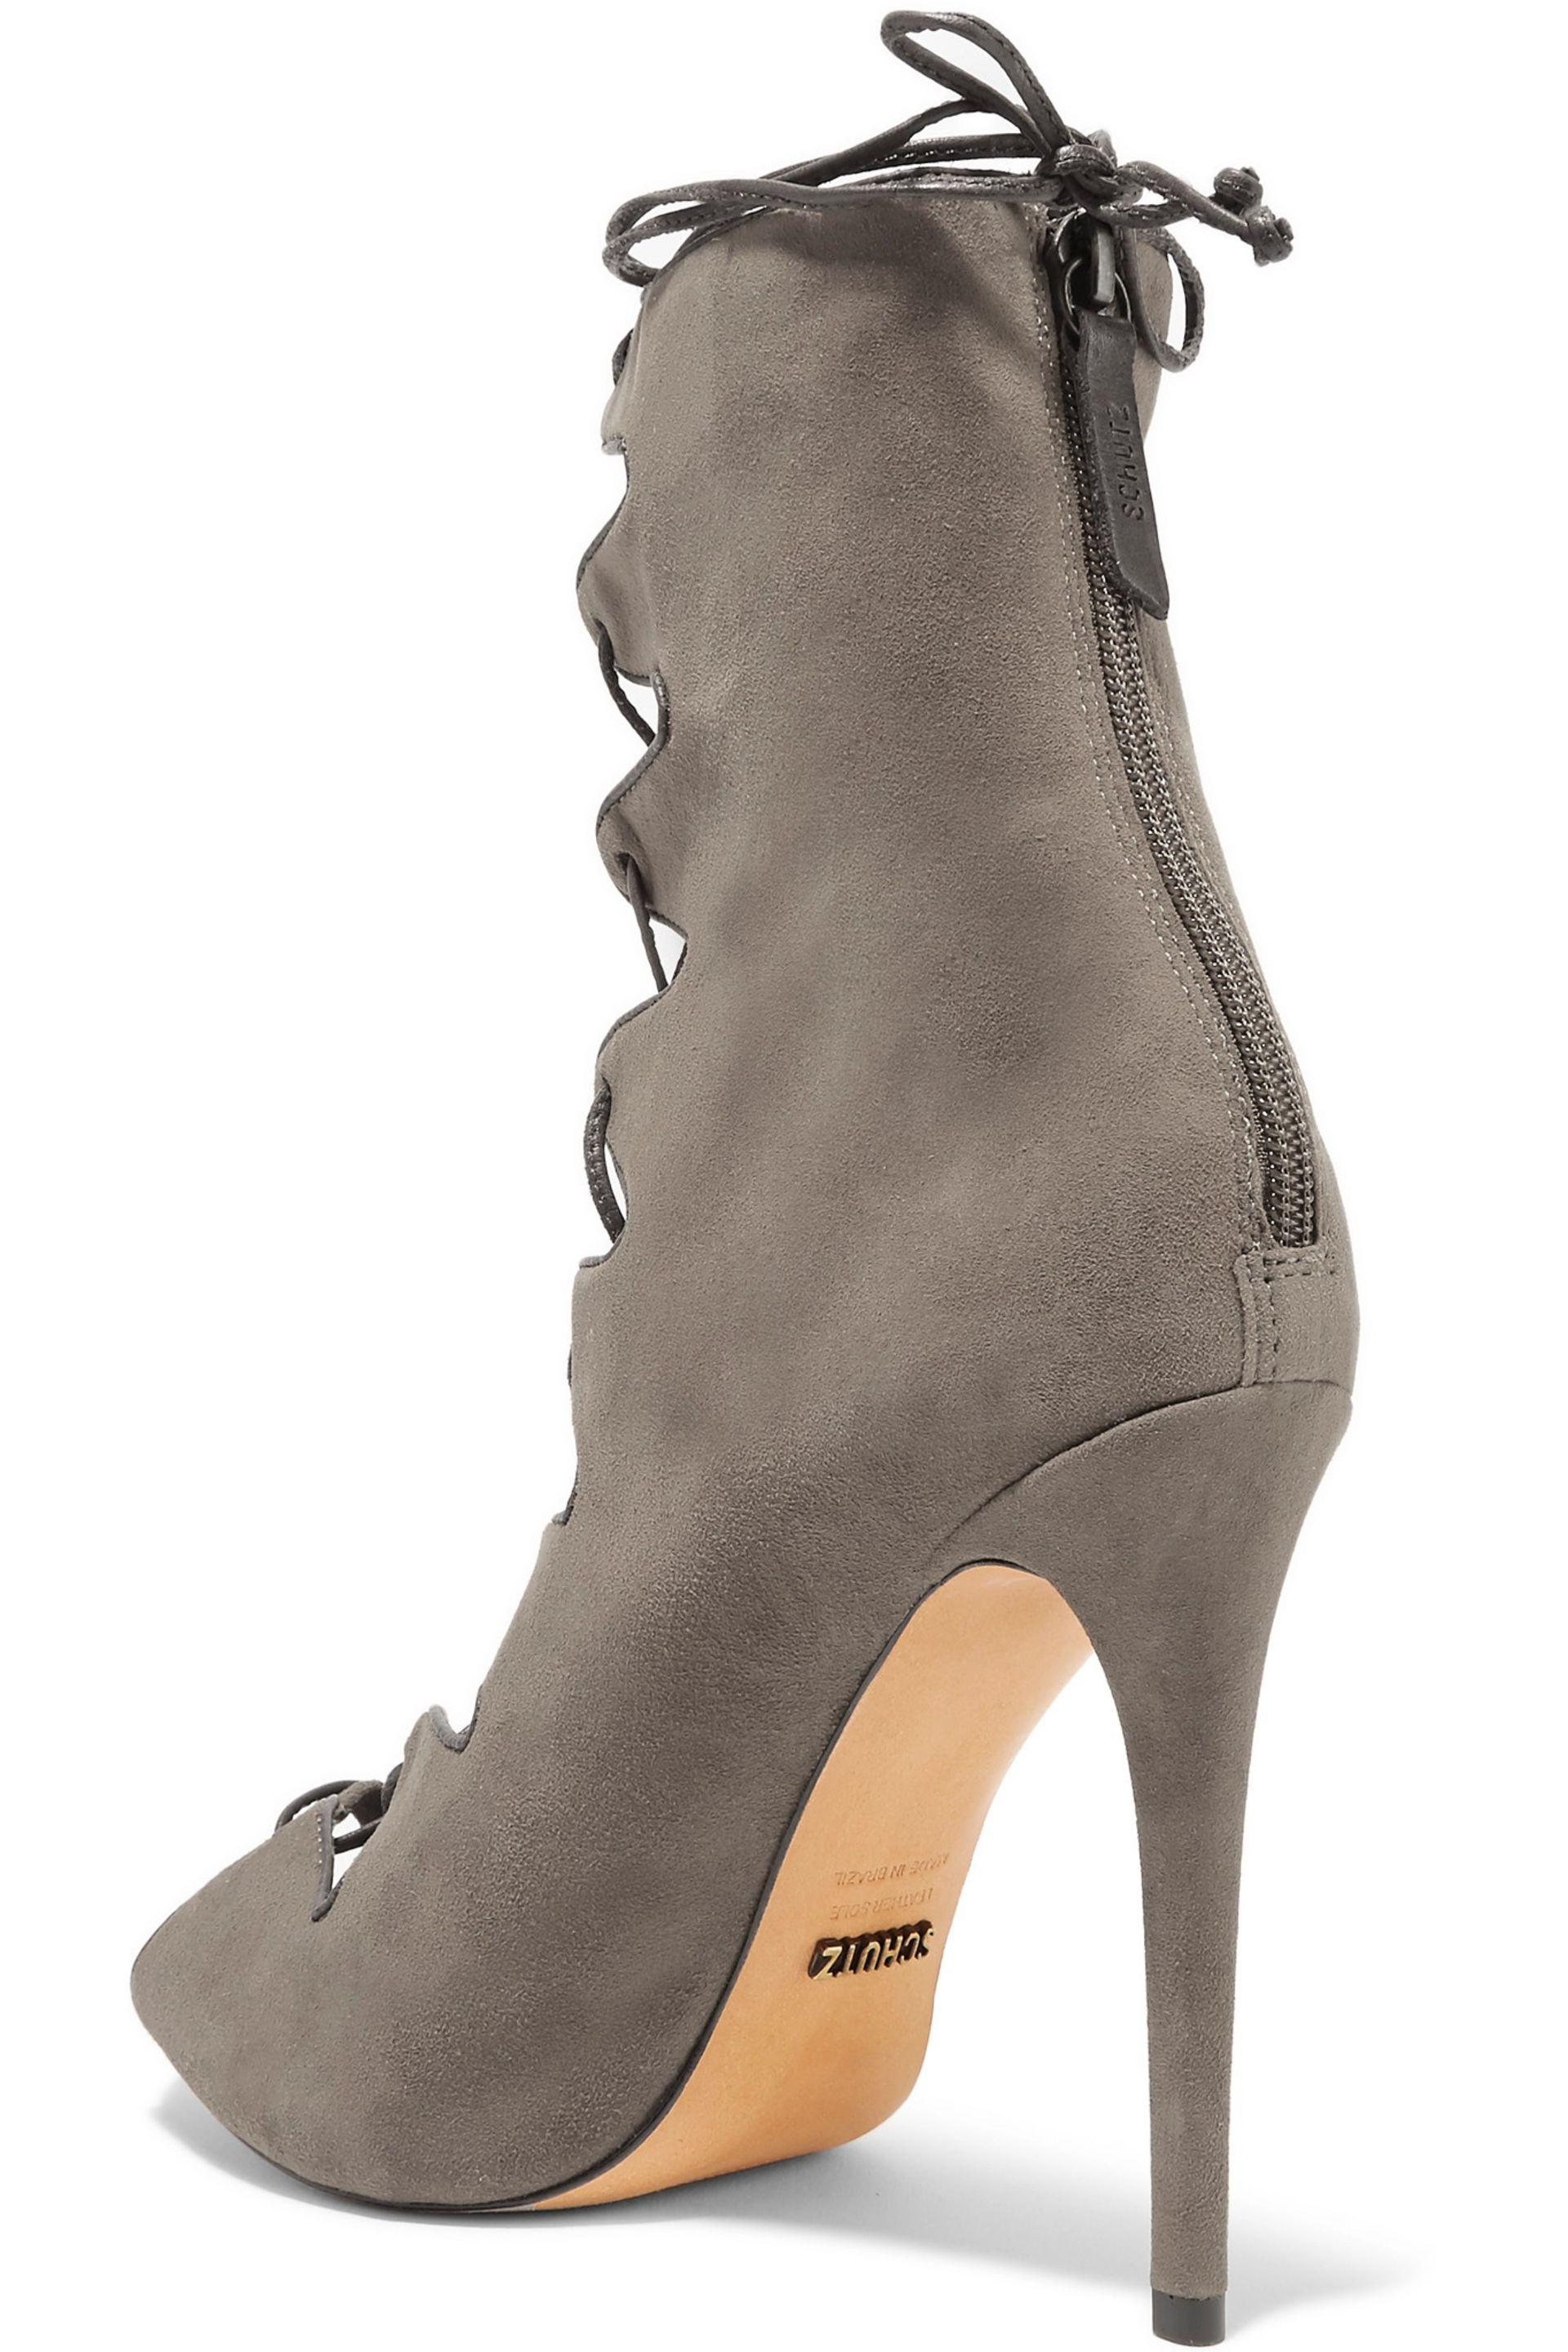 Schutz | Gray Leather-trimmed Suede Lace-up Sandals | Lyst. View Fullscreen